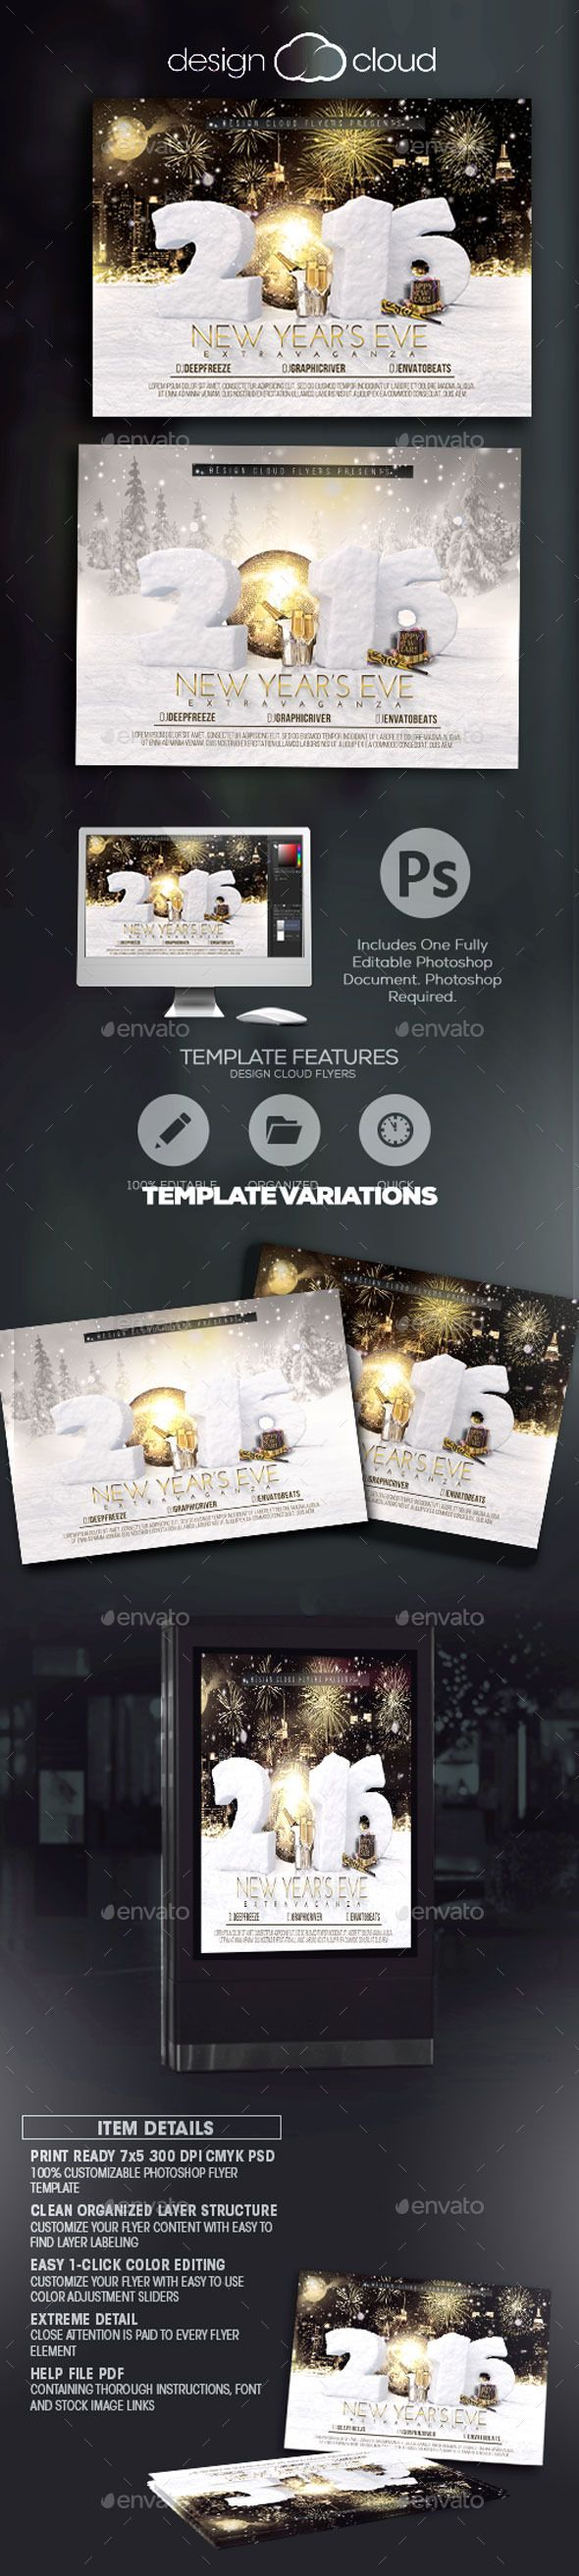 New Year's Eve Extravaganza Flyer Template — Photoshop PSD #party #light • Available here → https://graphicriver.net/item/new-years-eve-extravaganza-flyer-template/9630495?ref=pxcr